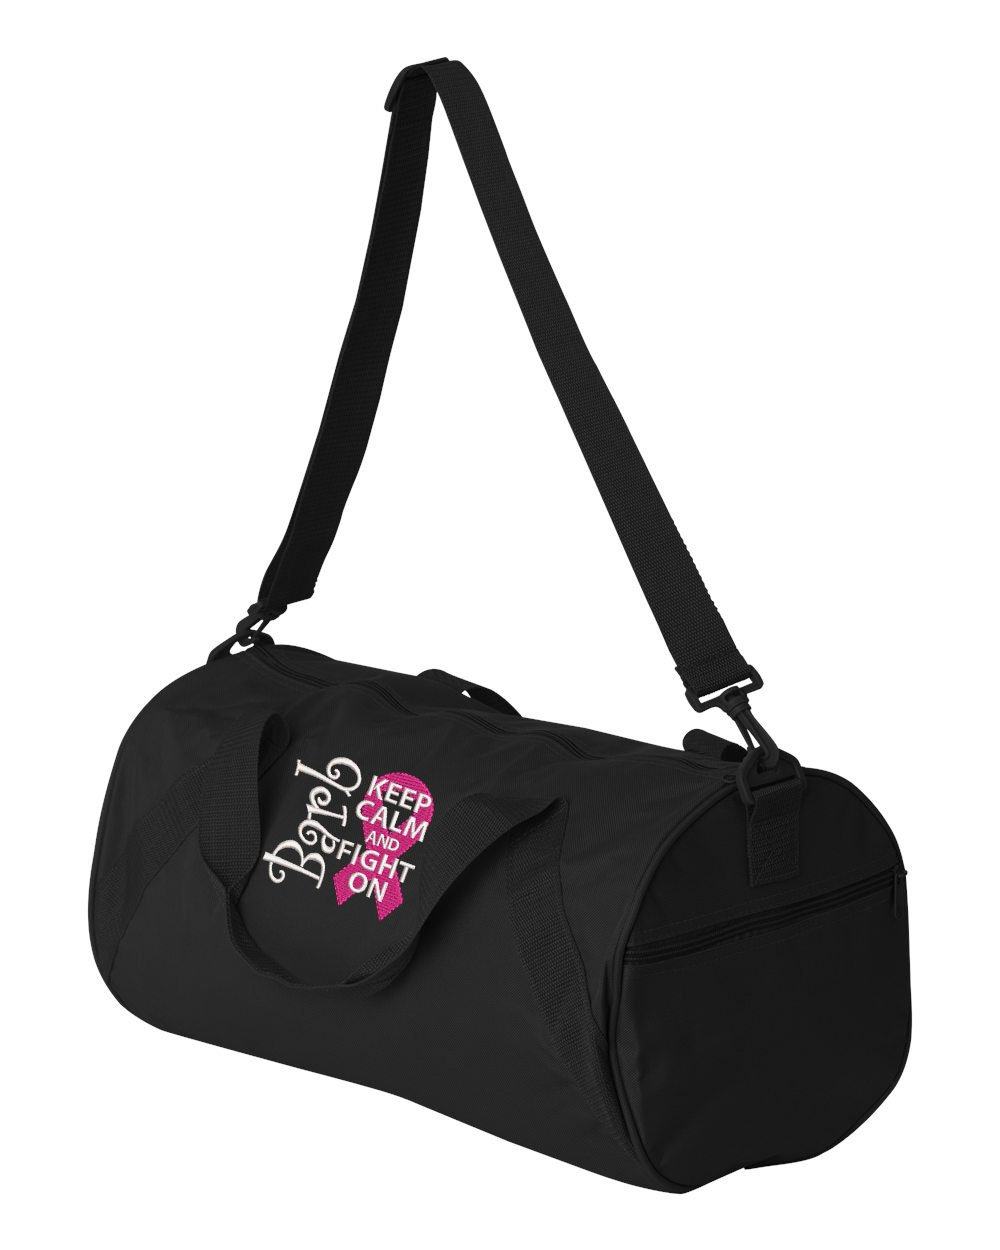 Breast Cancer Awareness Personalized Embroidered Duffle Bag